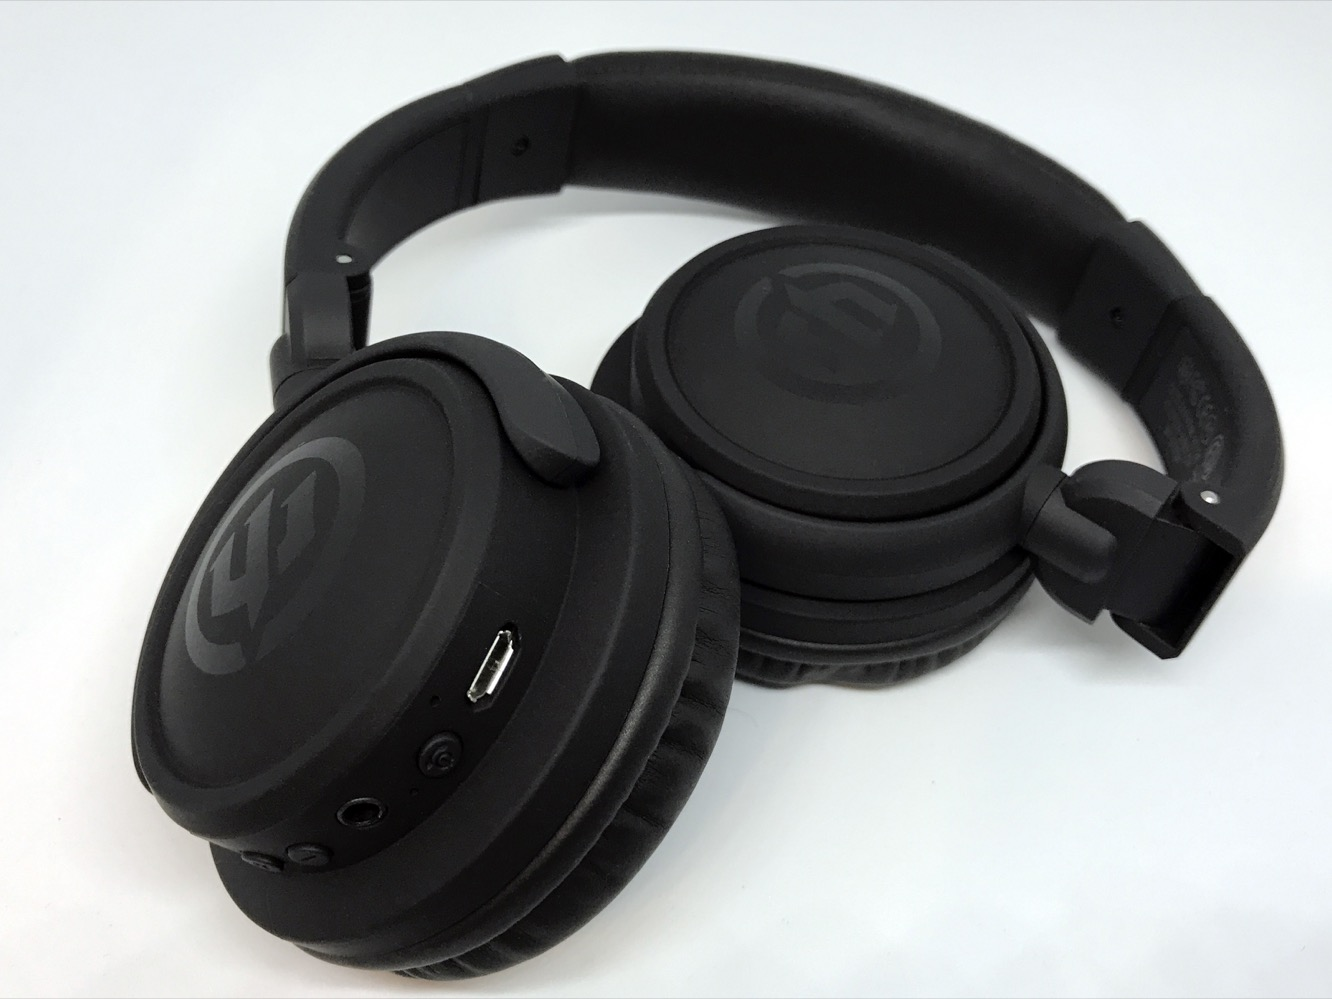 Review: Wicked Audio Endo Bluetooth On-Ear Headphones